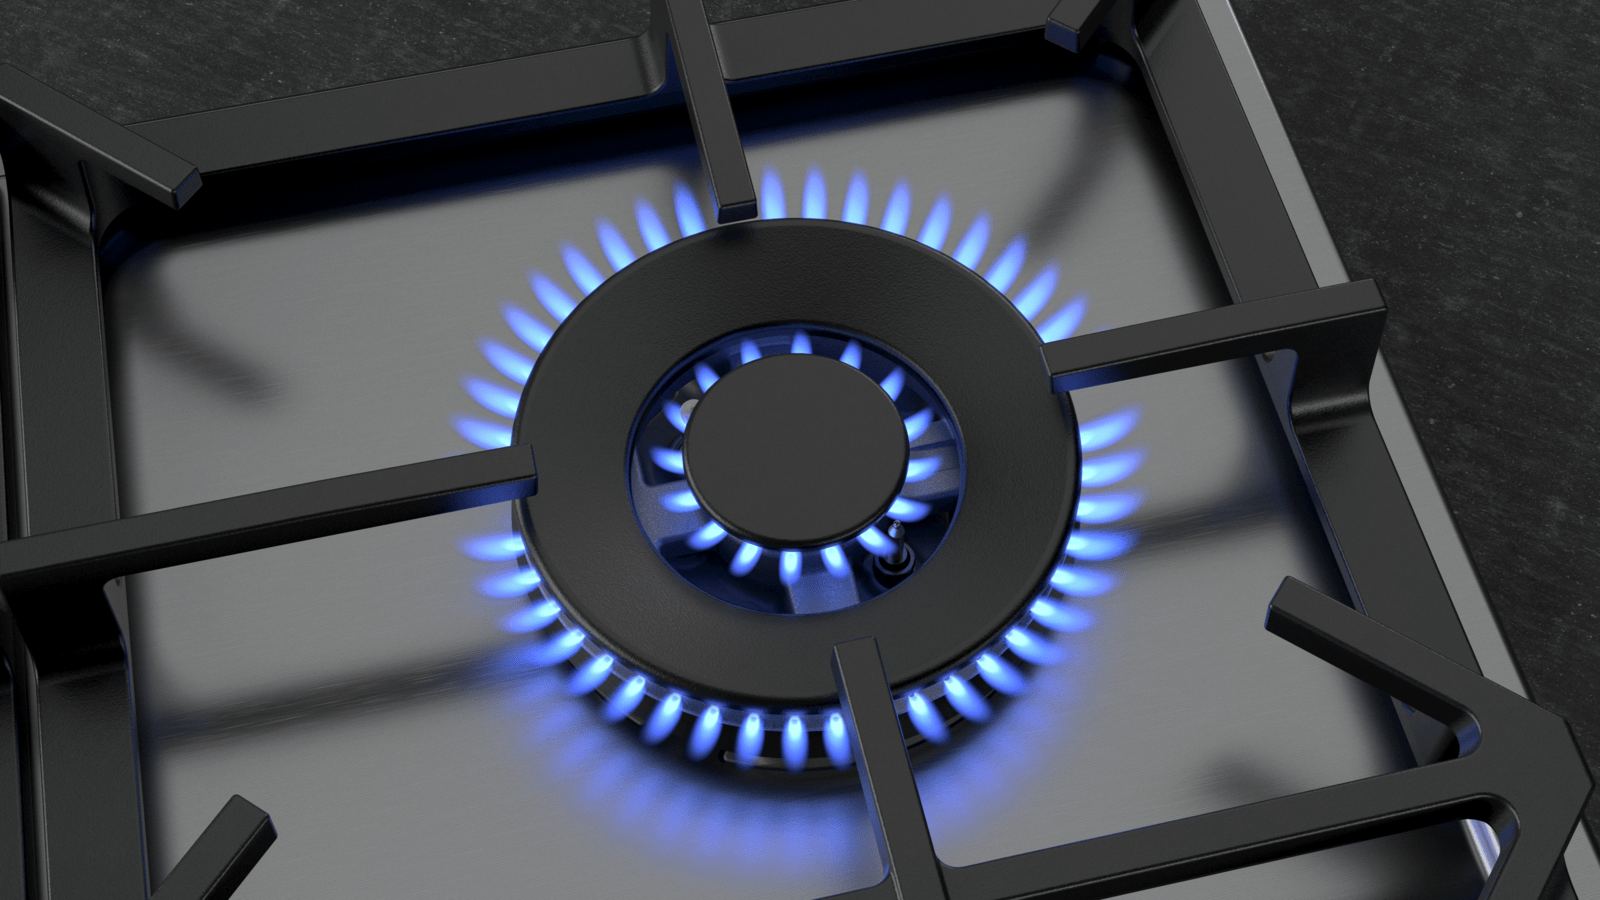 Best Heat Diffuser For Gas Stove And Top Guide